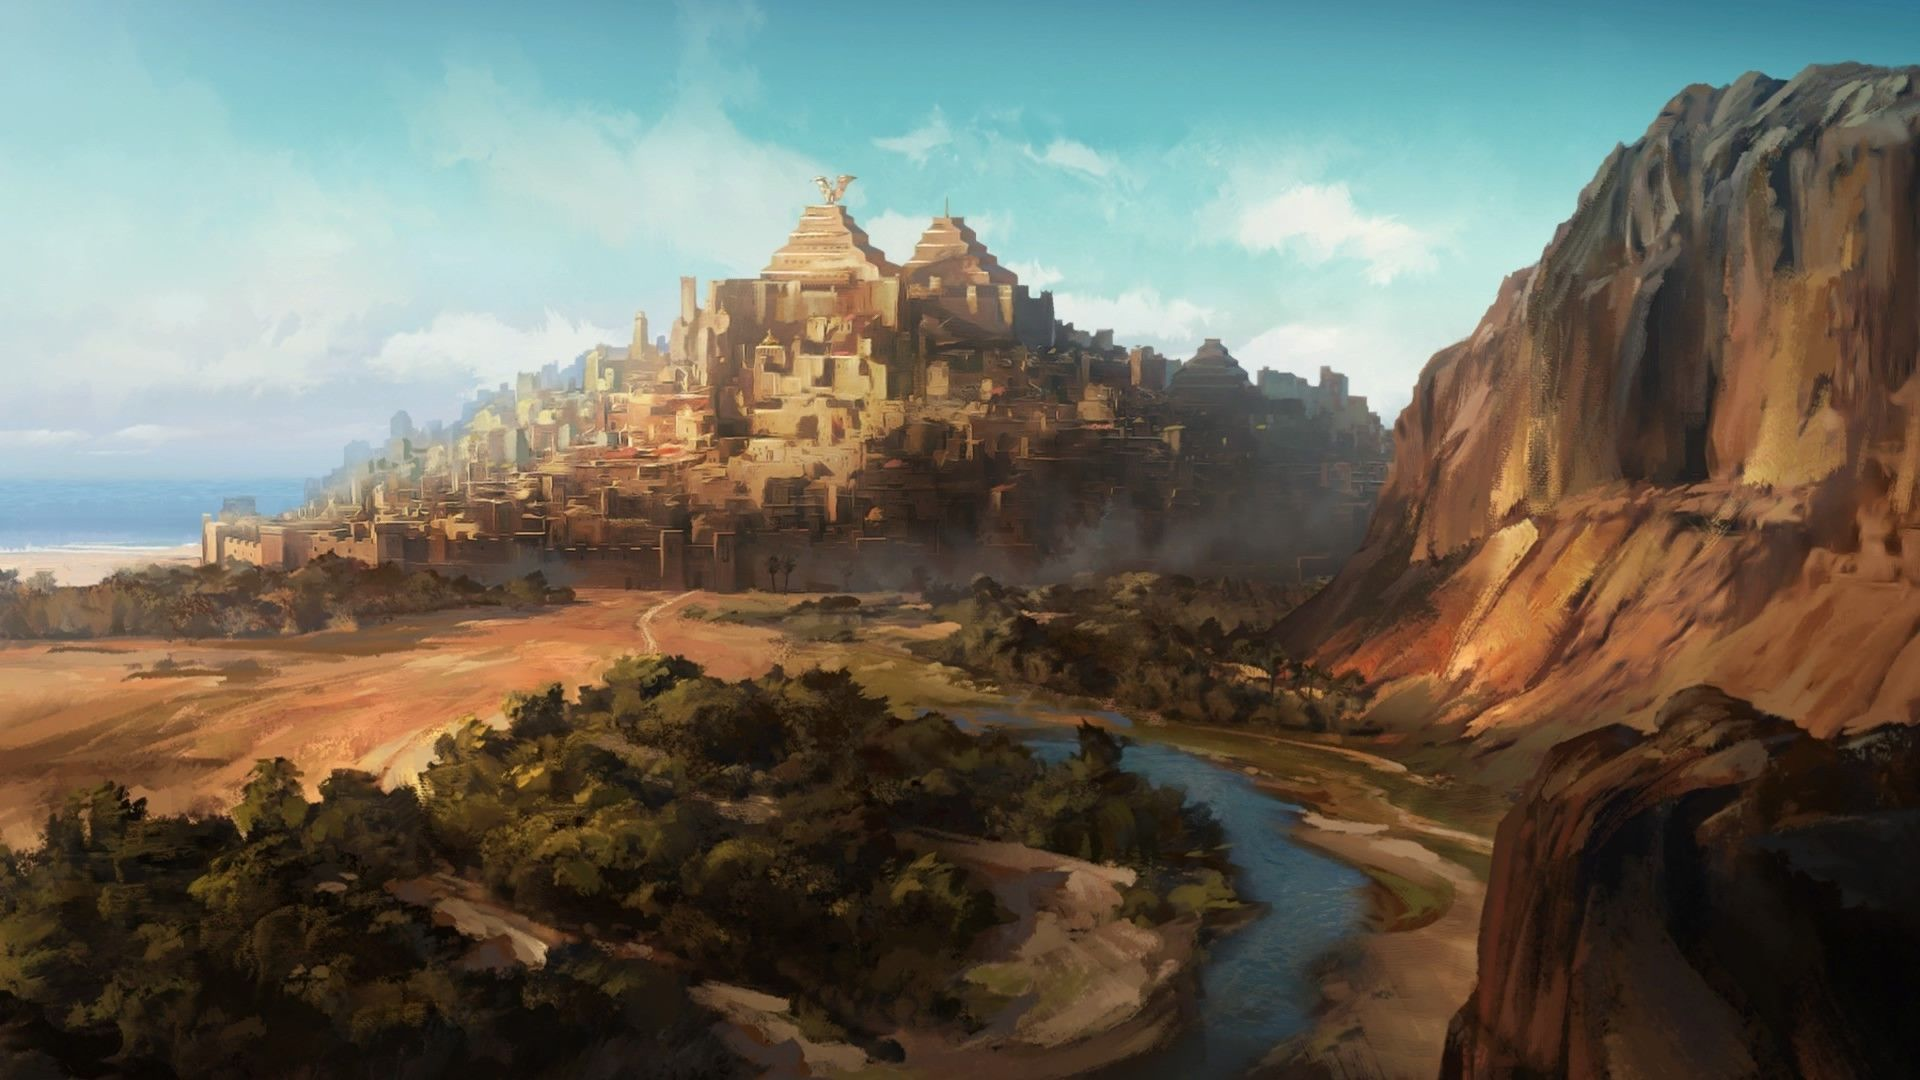 Game of Thrones Landscape Town